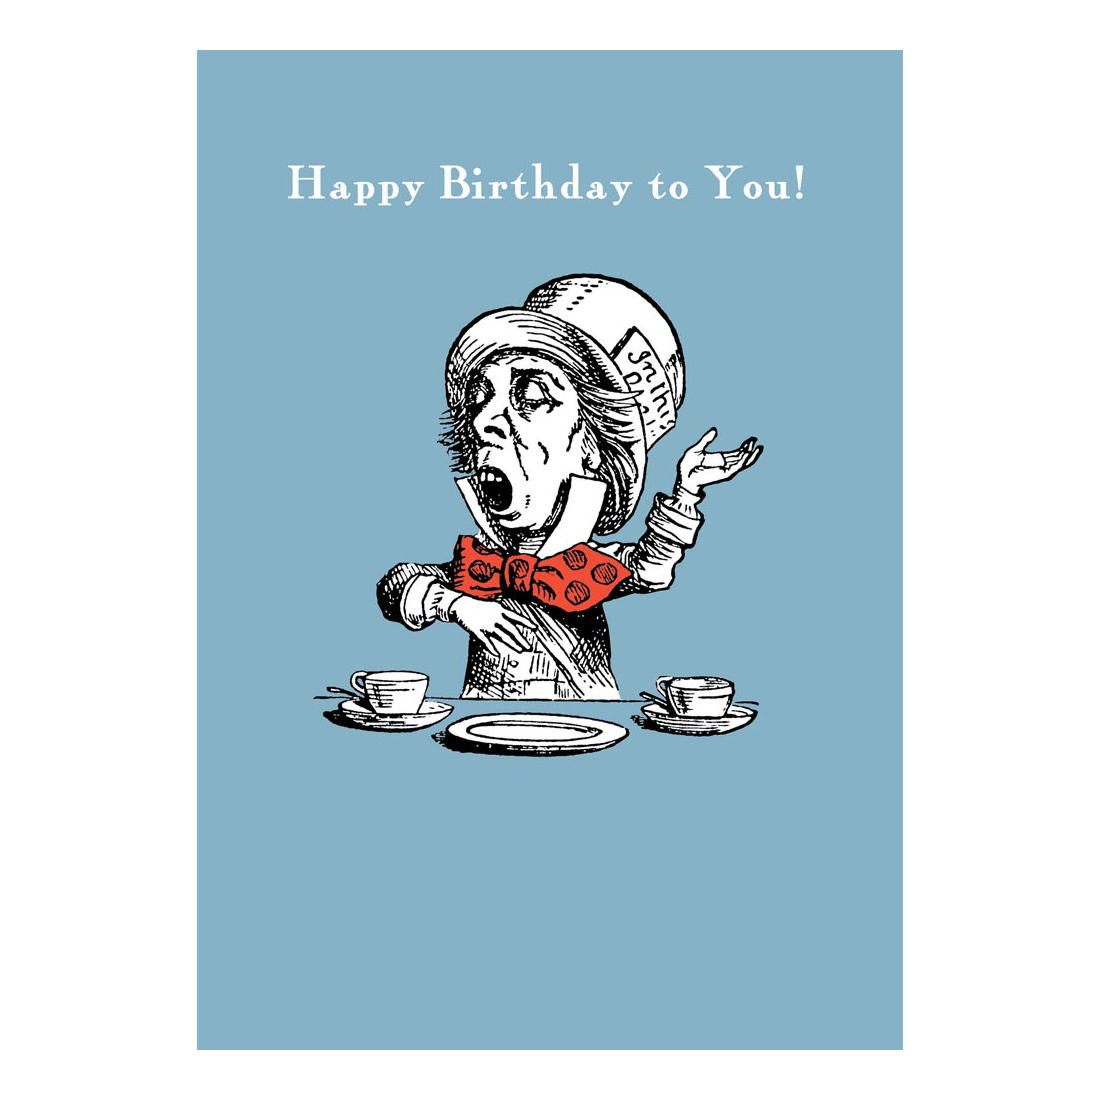 ALICE IN WONDERLAND MAD HATTER HAPPY BIRTHDAY TO YOU CARD